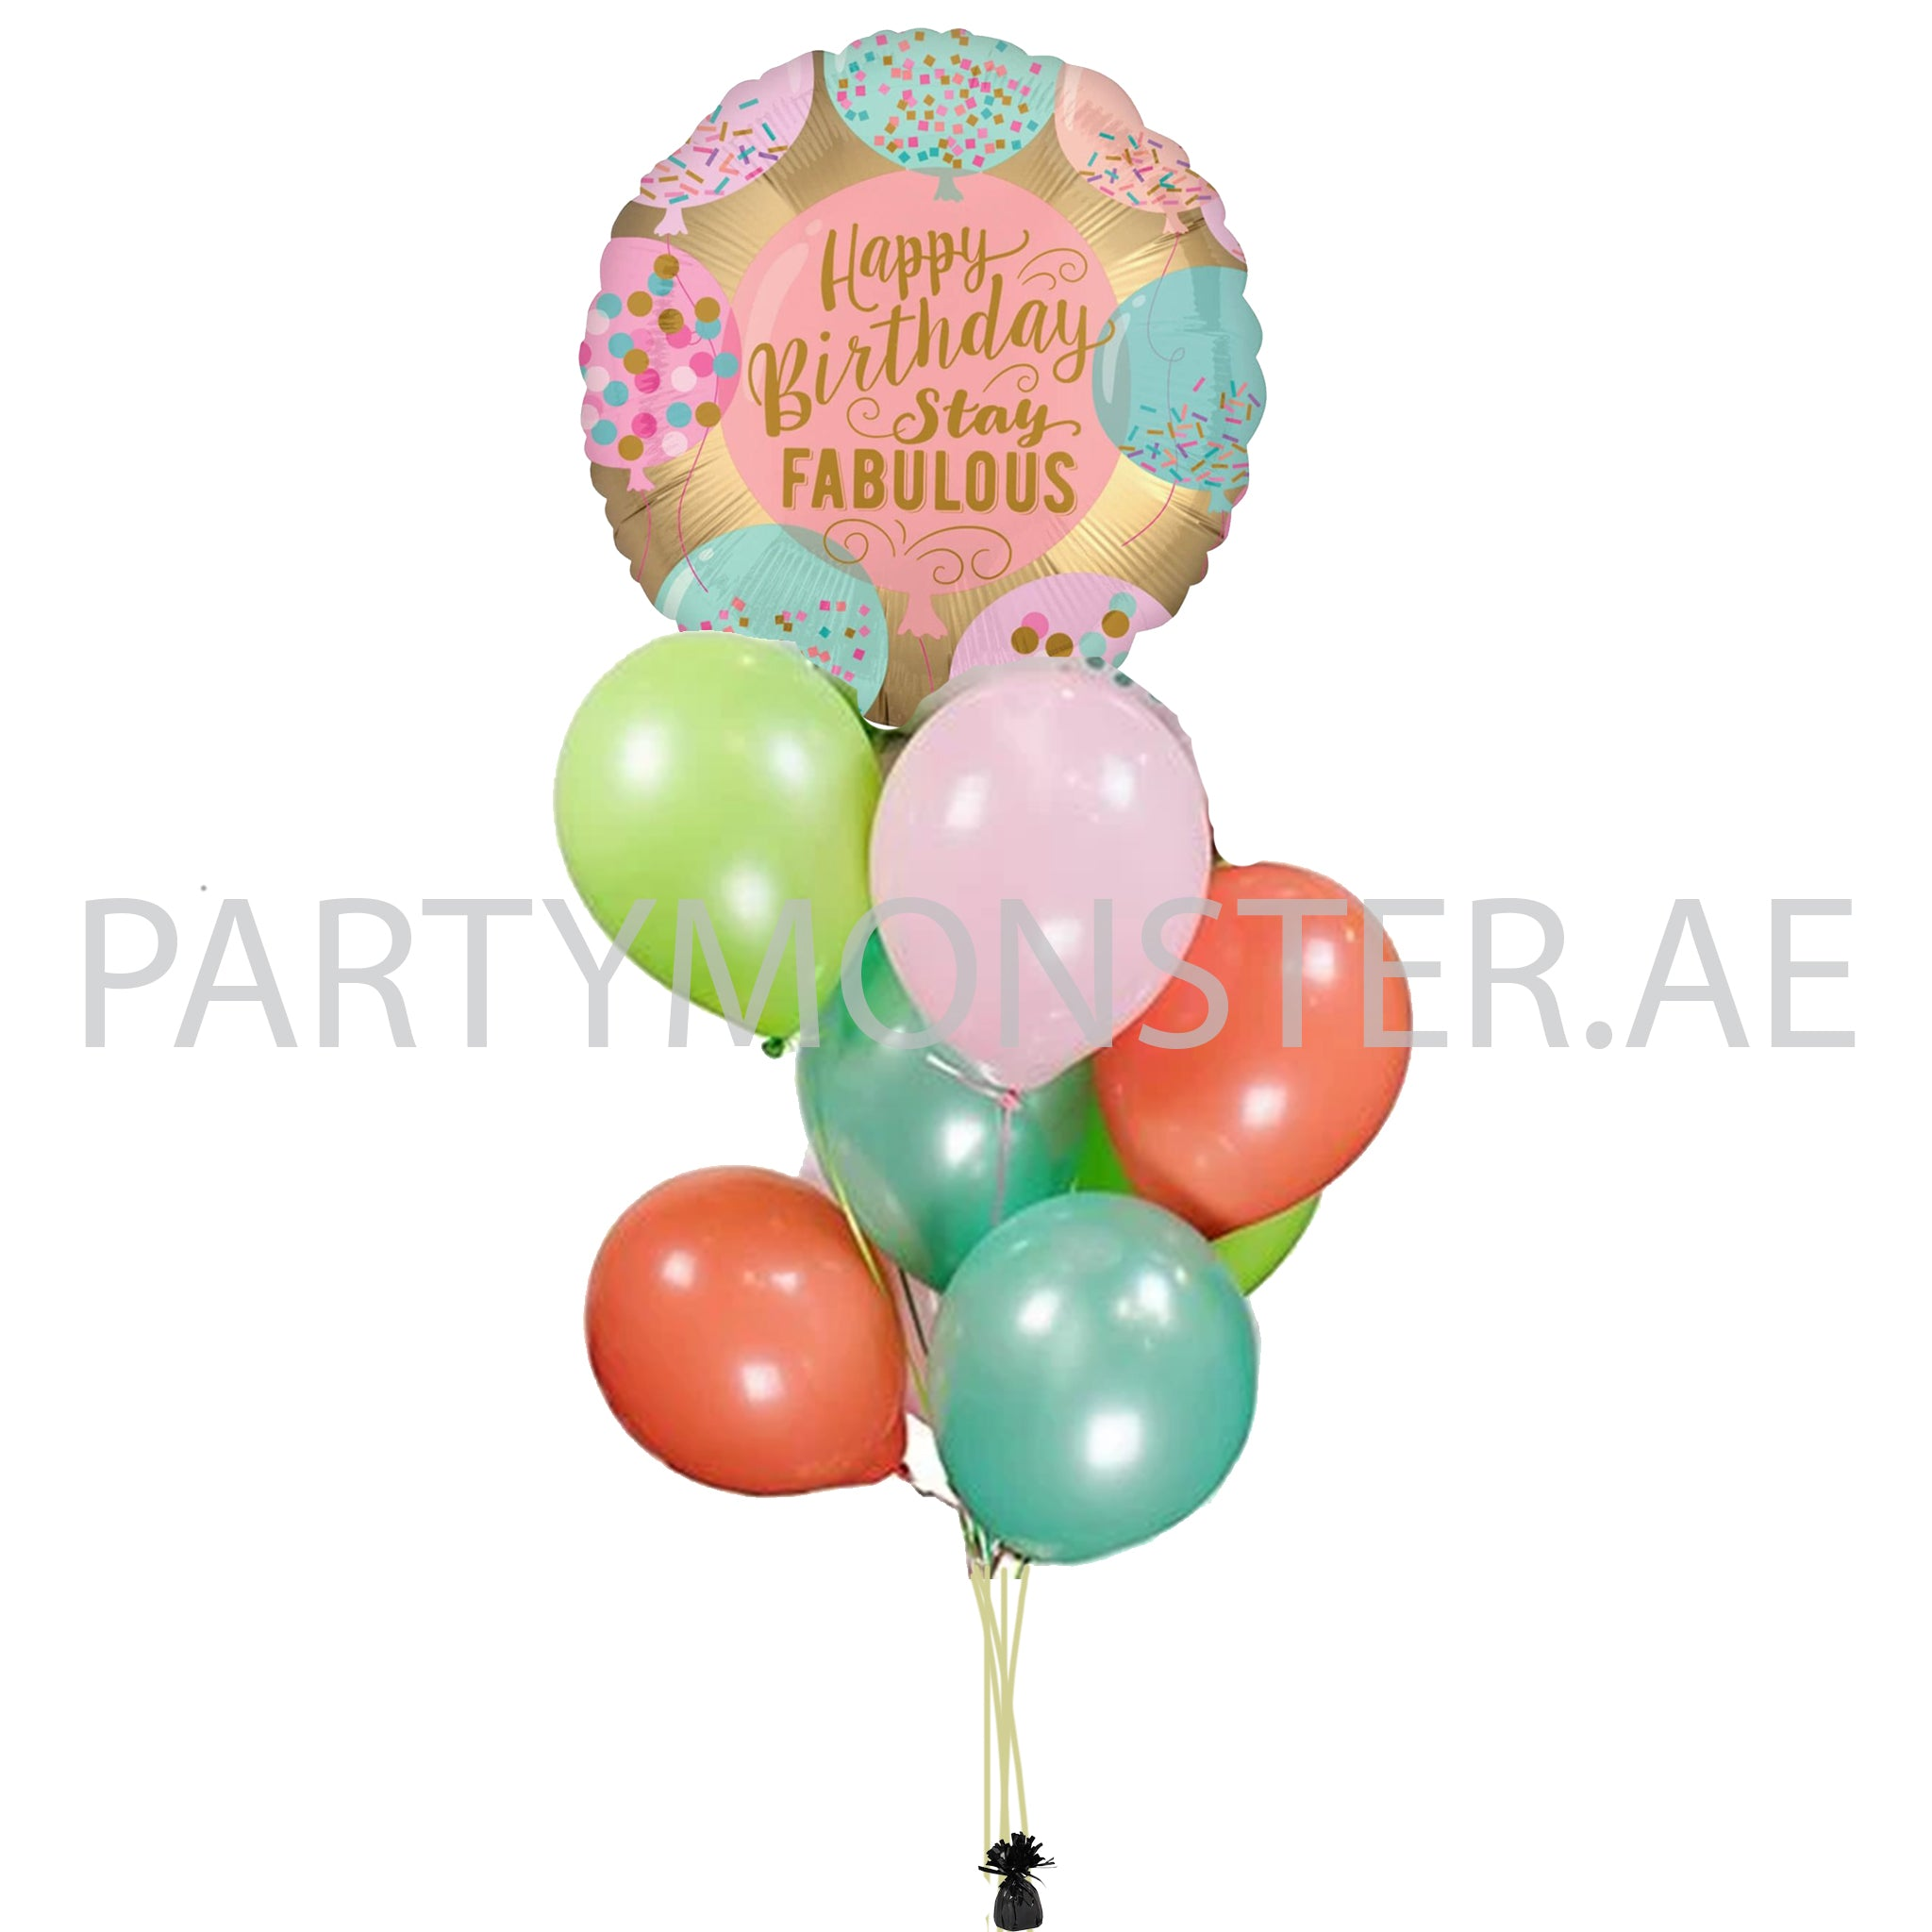 Stay Fabulous Birthday Balloons Bouquet 02